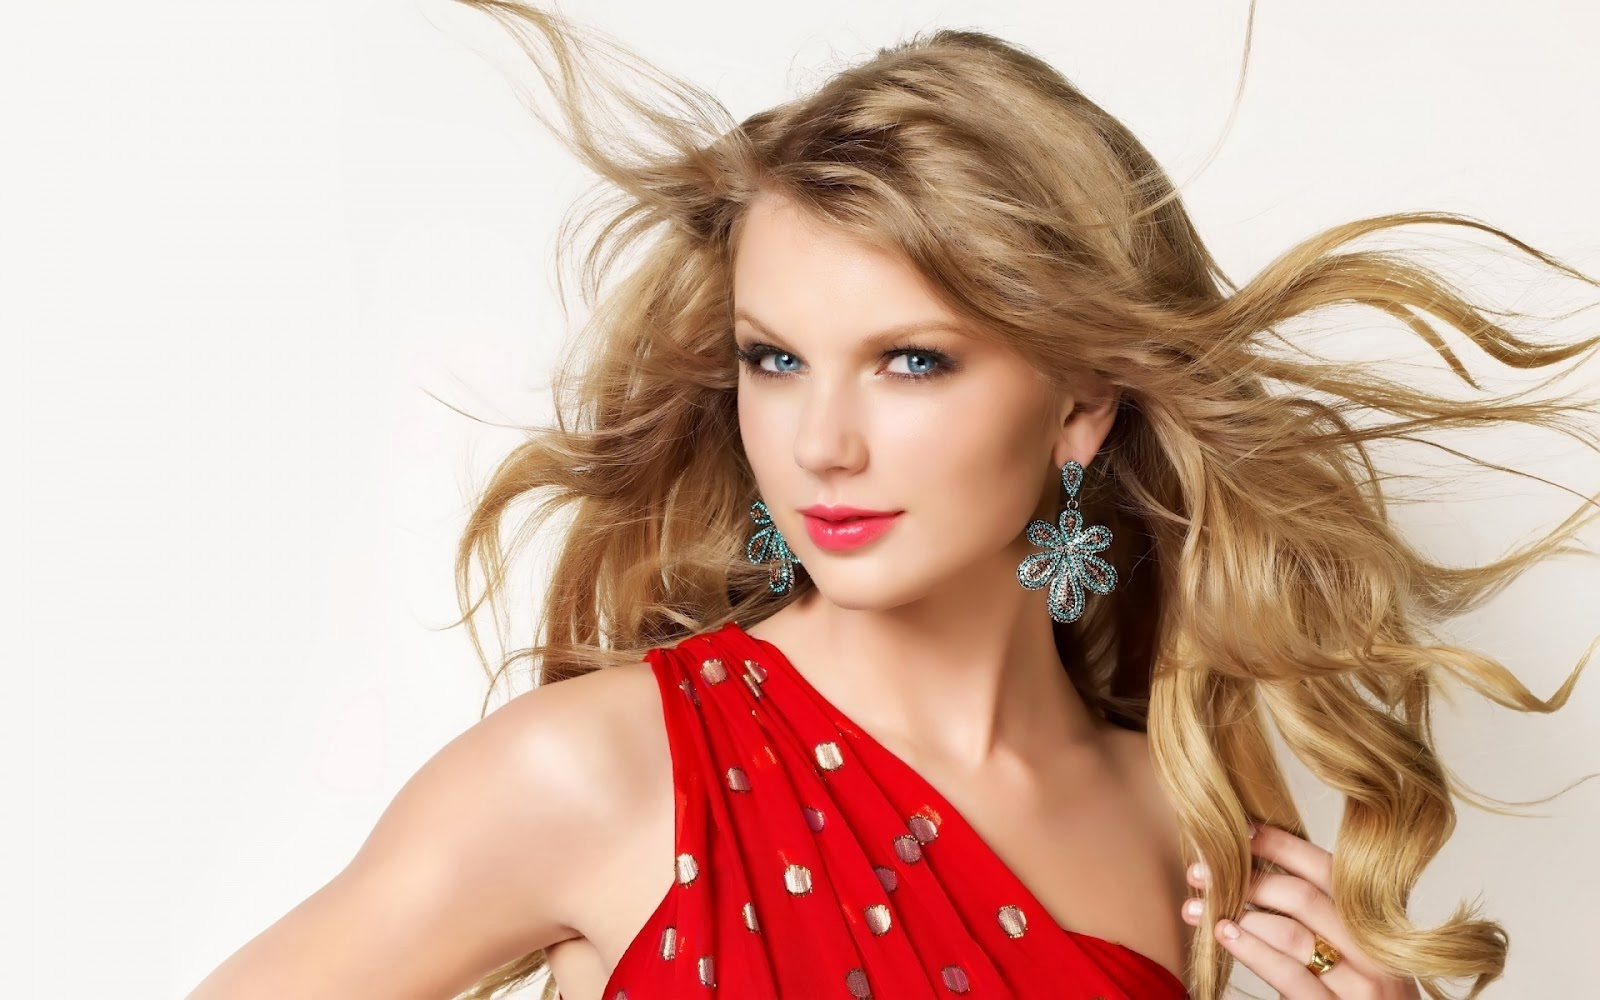 my cute and lovable space♥: taylor swift is coming back to manila!